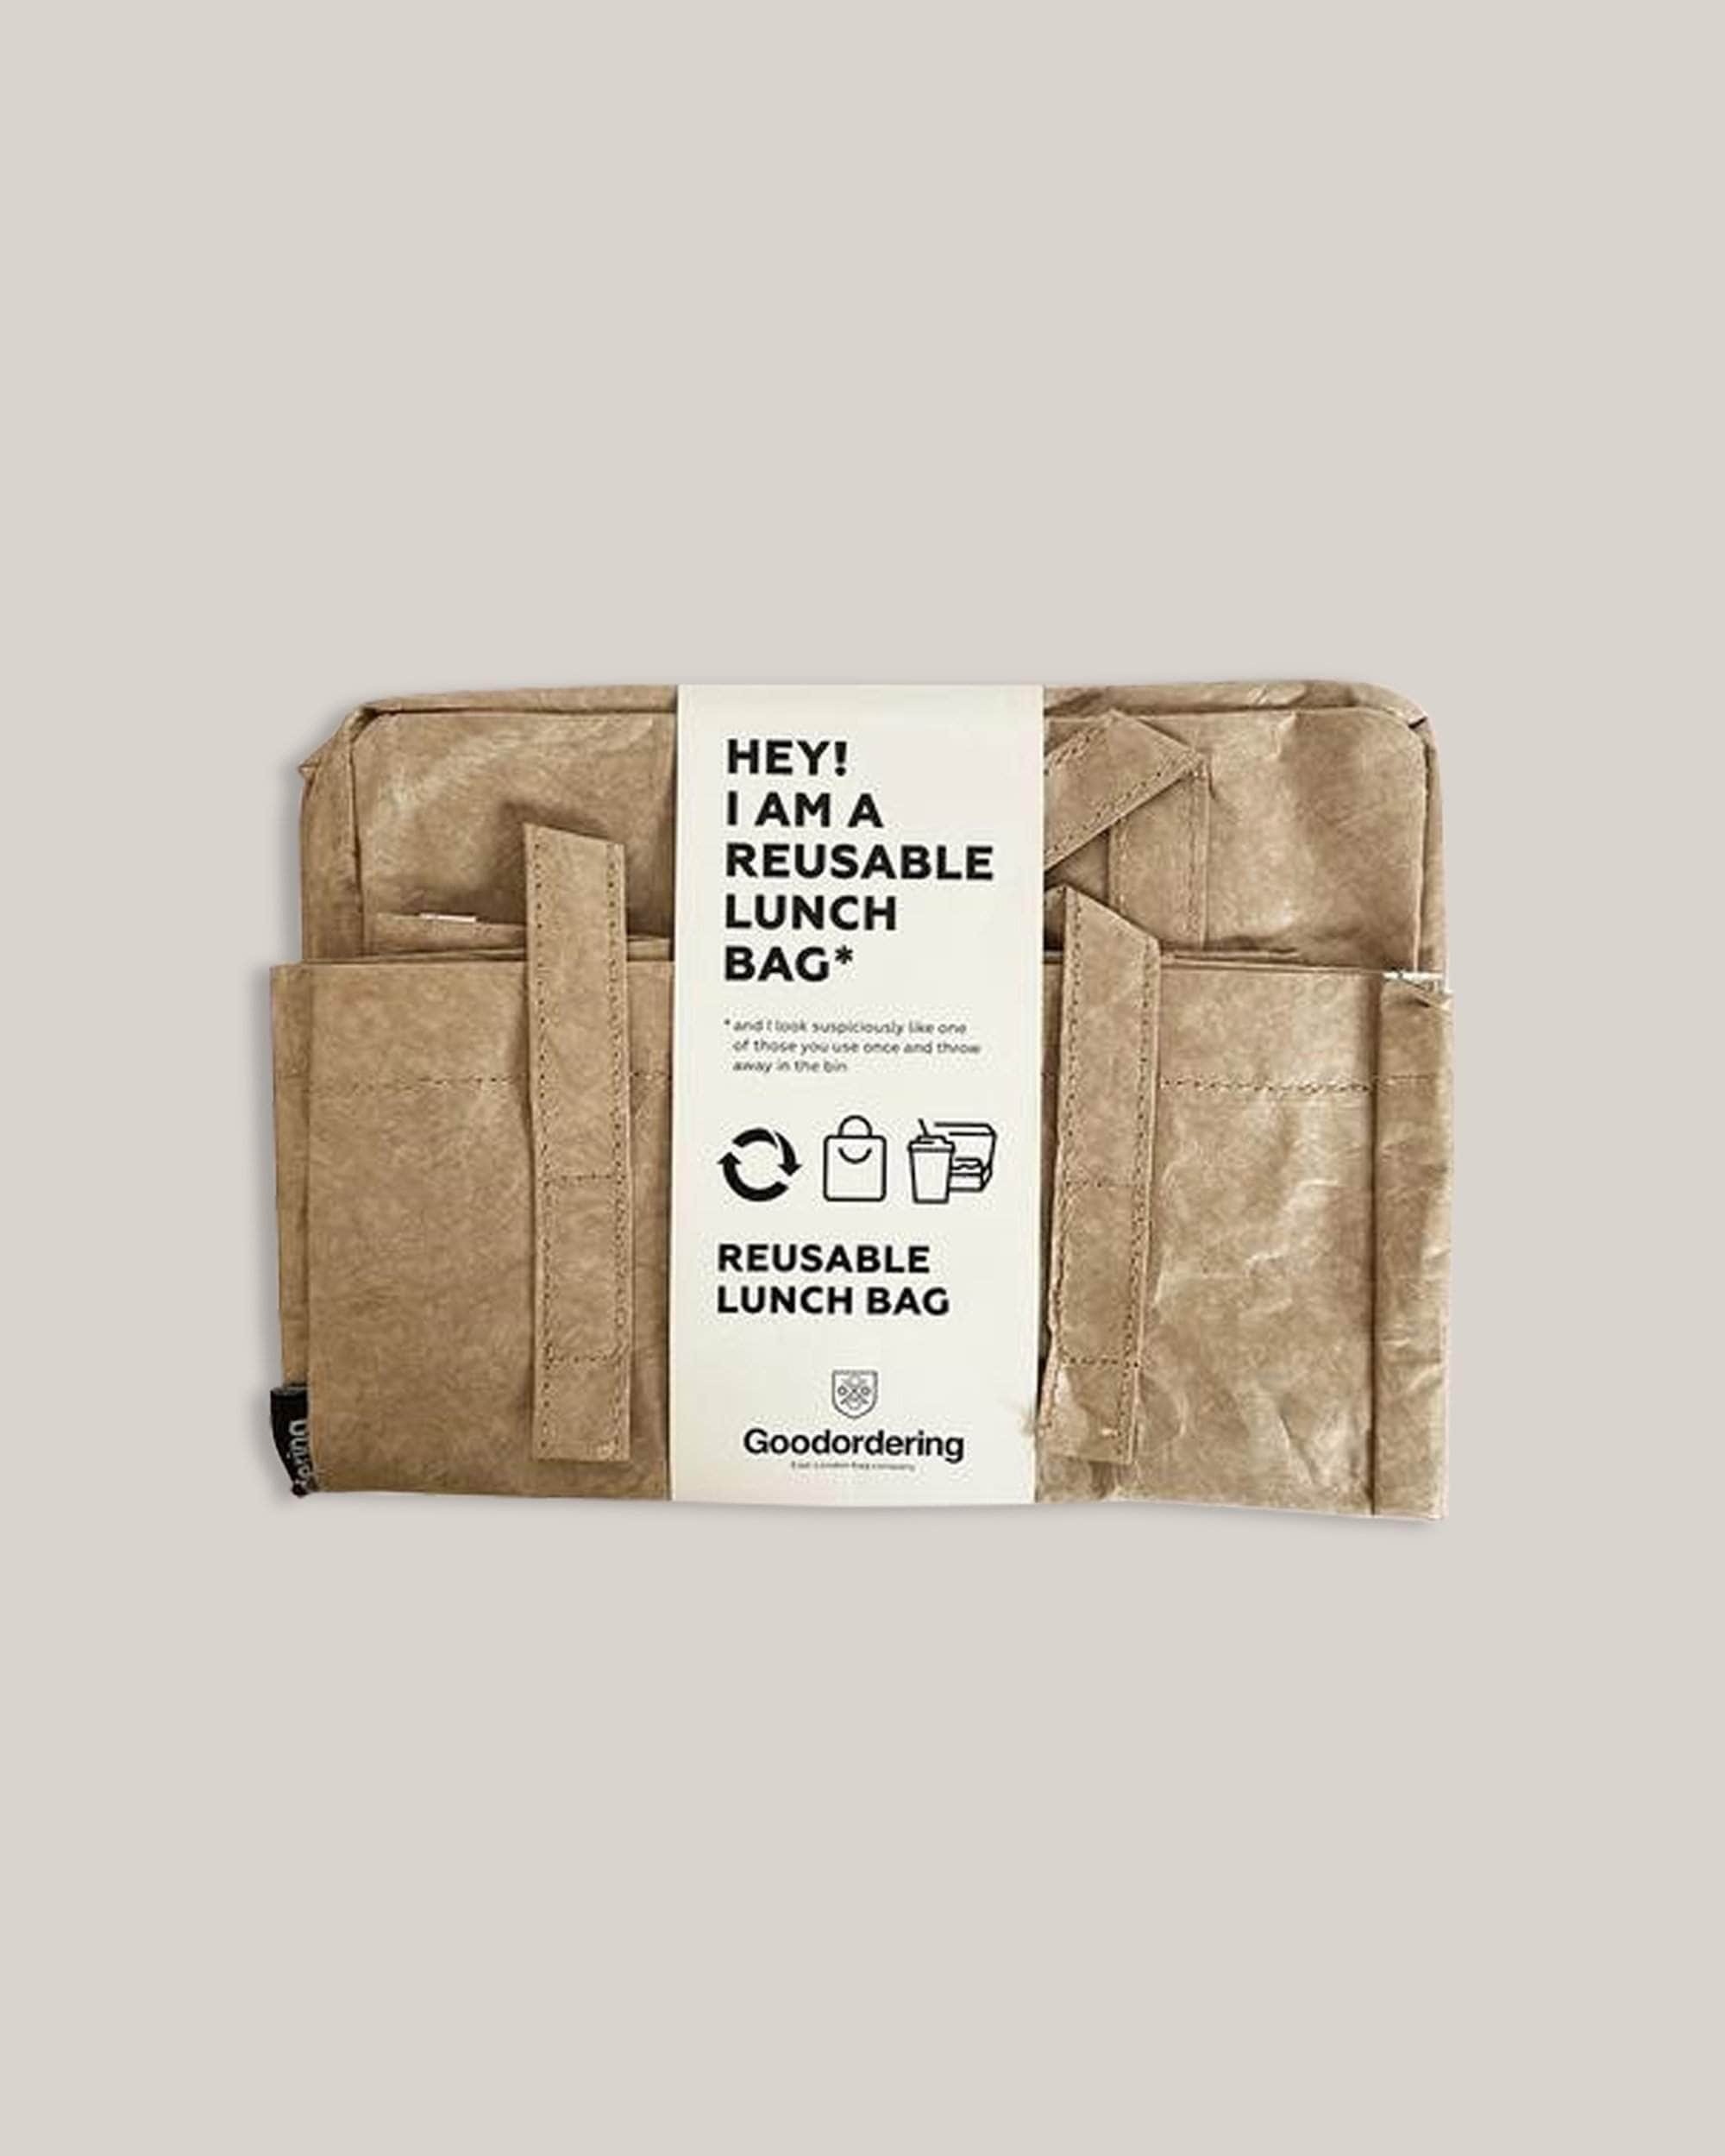 Goodordering - Sustainable Lunchbag - Eco Lunchbag - Reusable Lunchbag